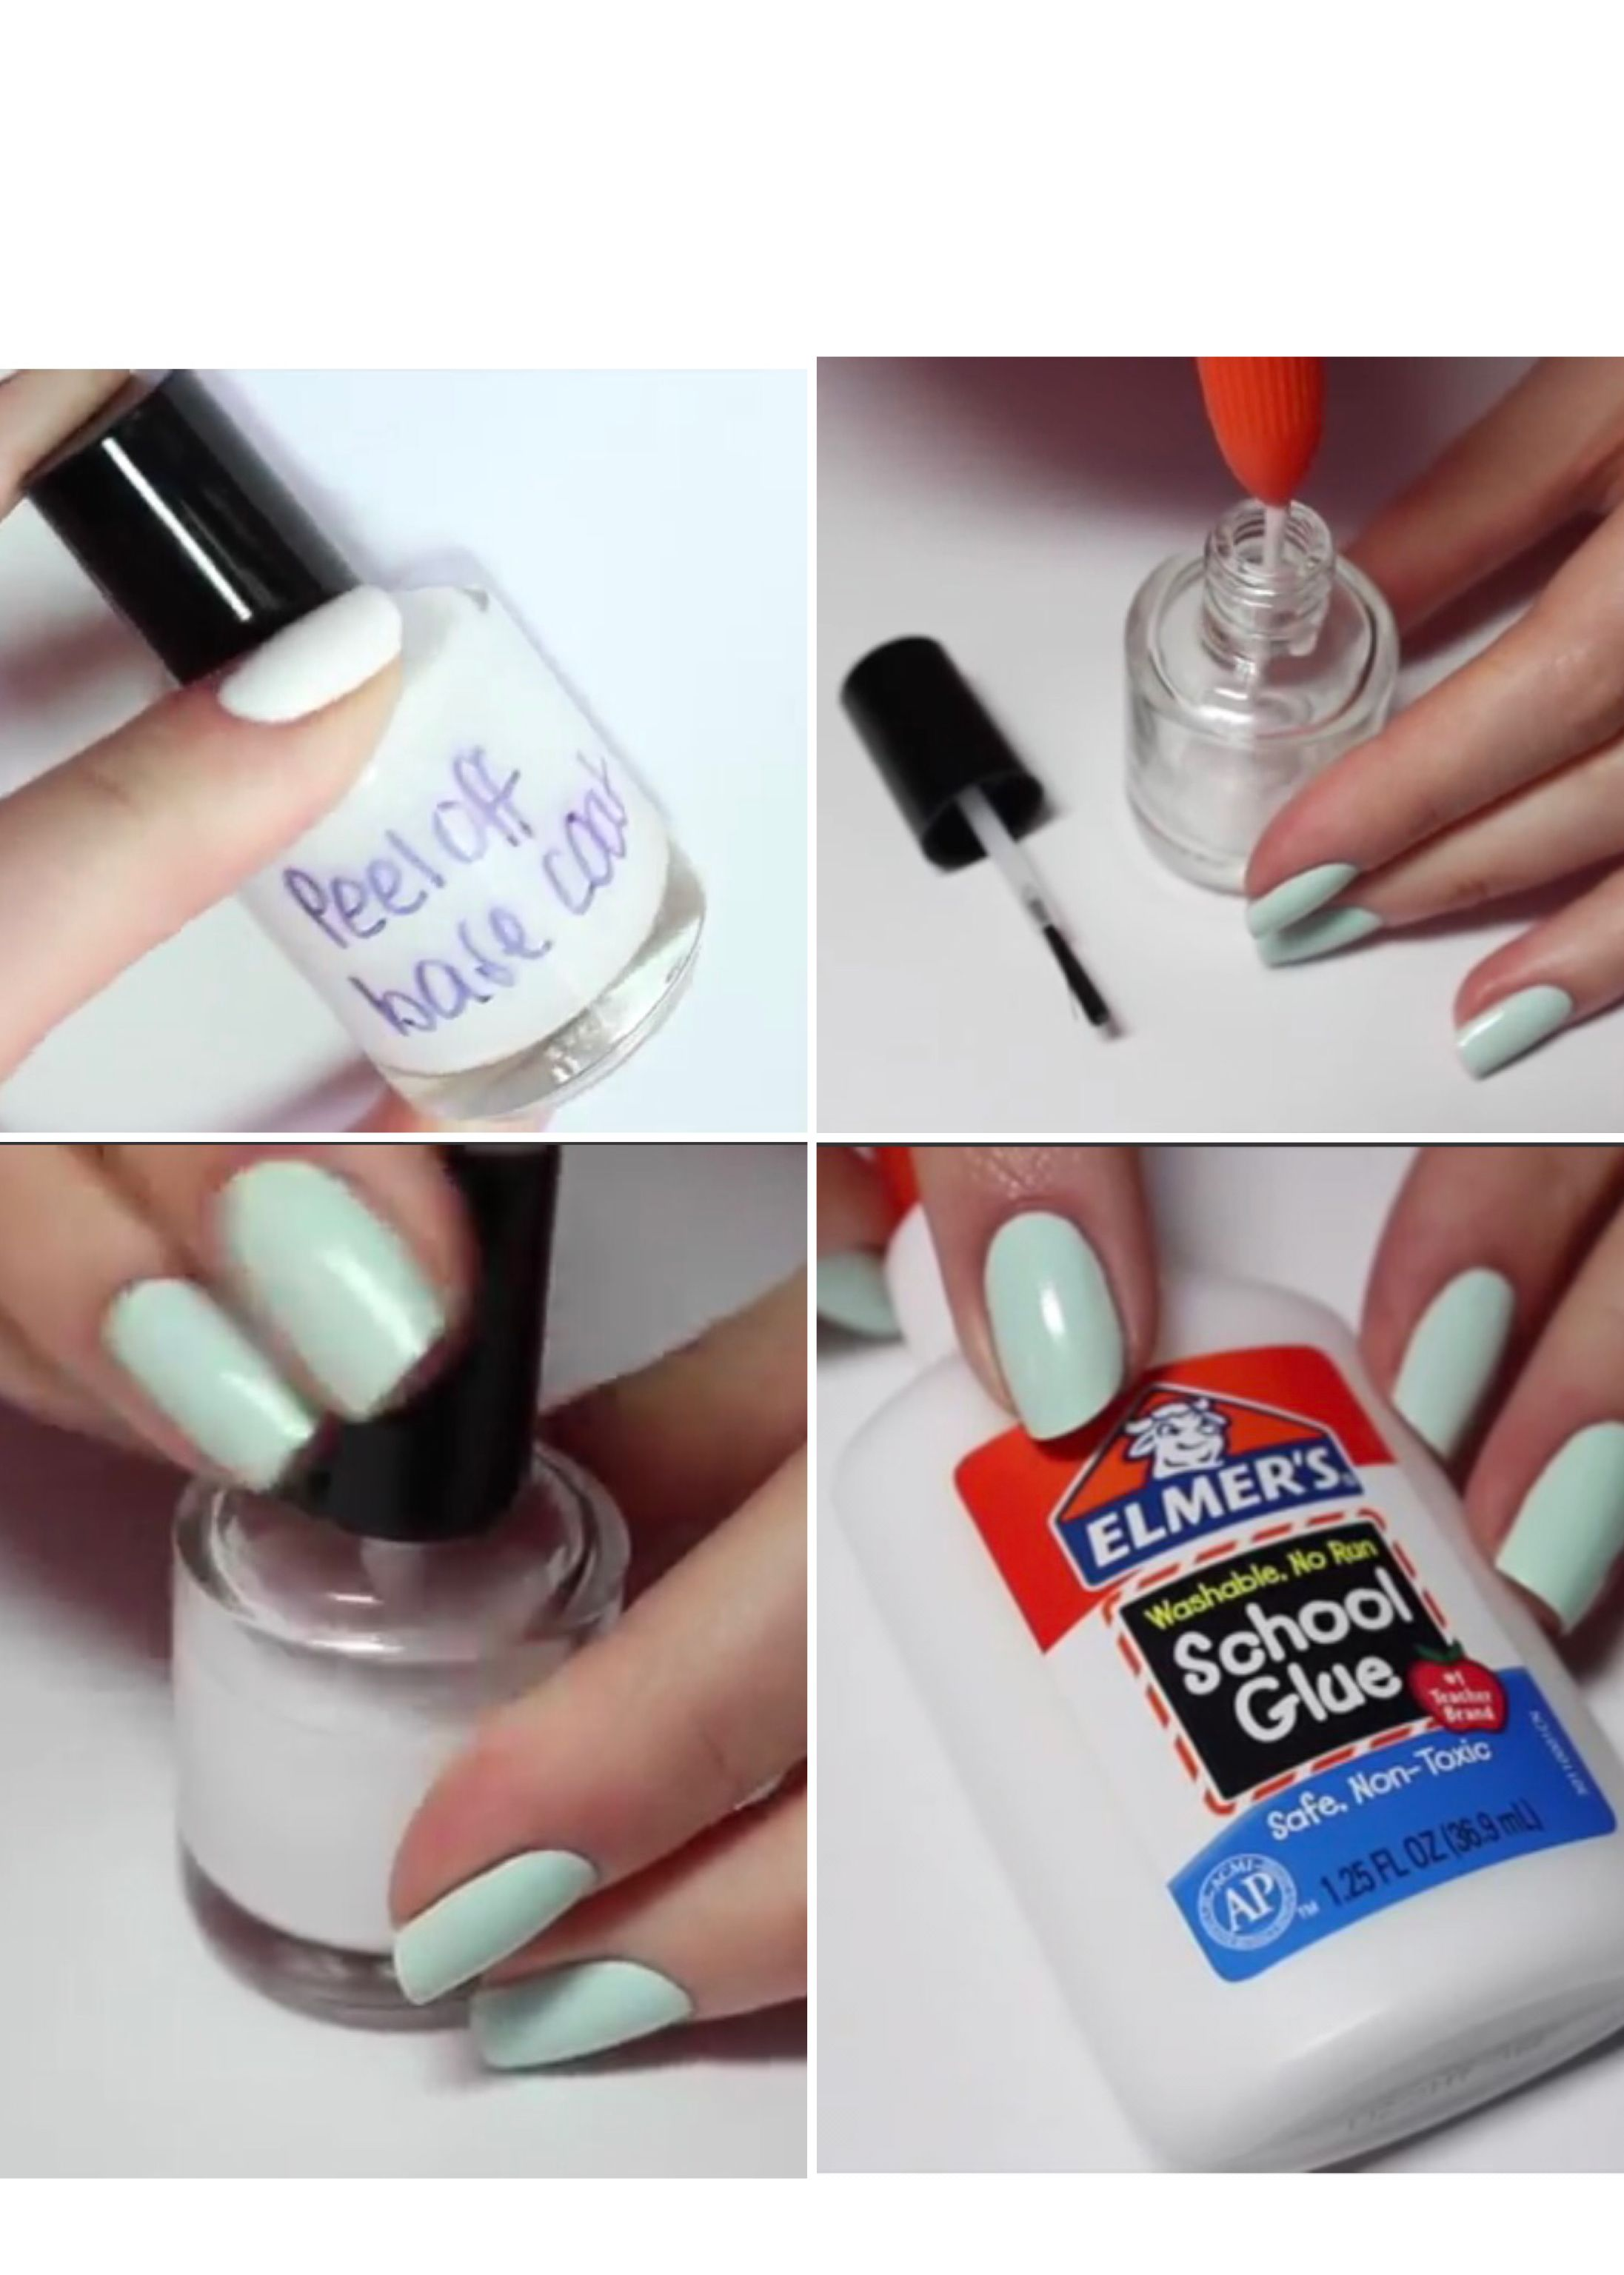 Use Elmers Glue In A Clean Nail Polish Bottle To Make Up Base Coat